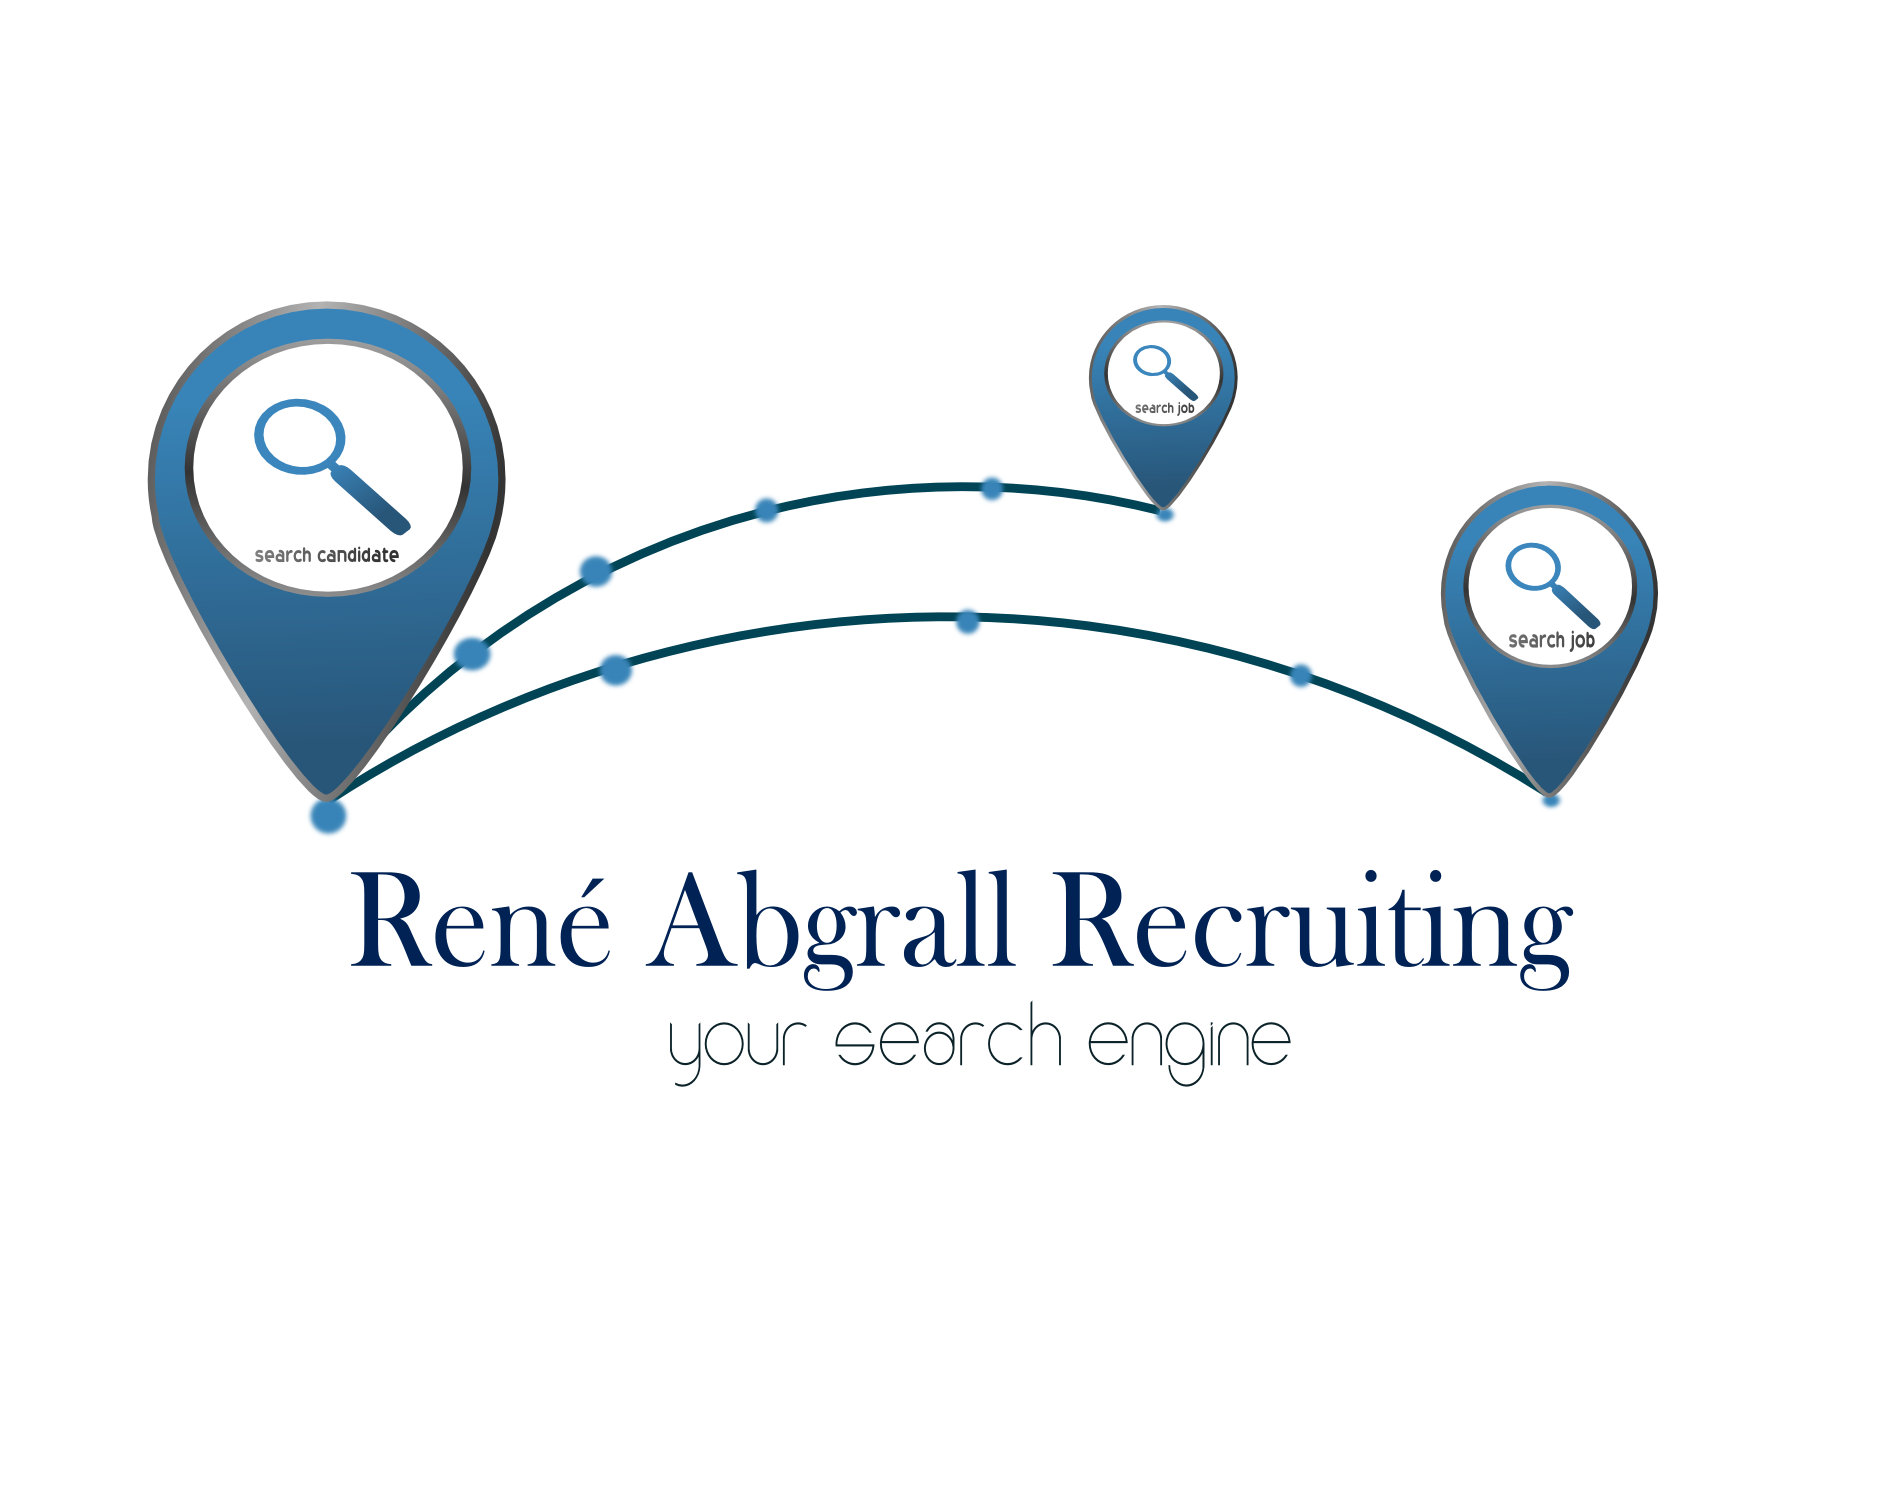 Logo Design by Arindam Khanda - Entry No. 39 in the Logo Design Contest Artistic Logo Design for René Abgrall Recruiting.